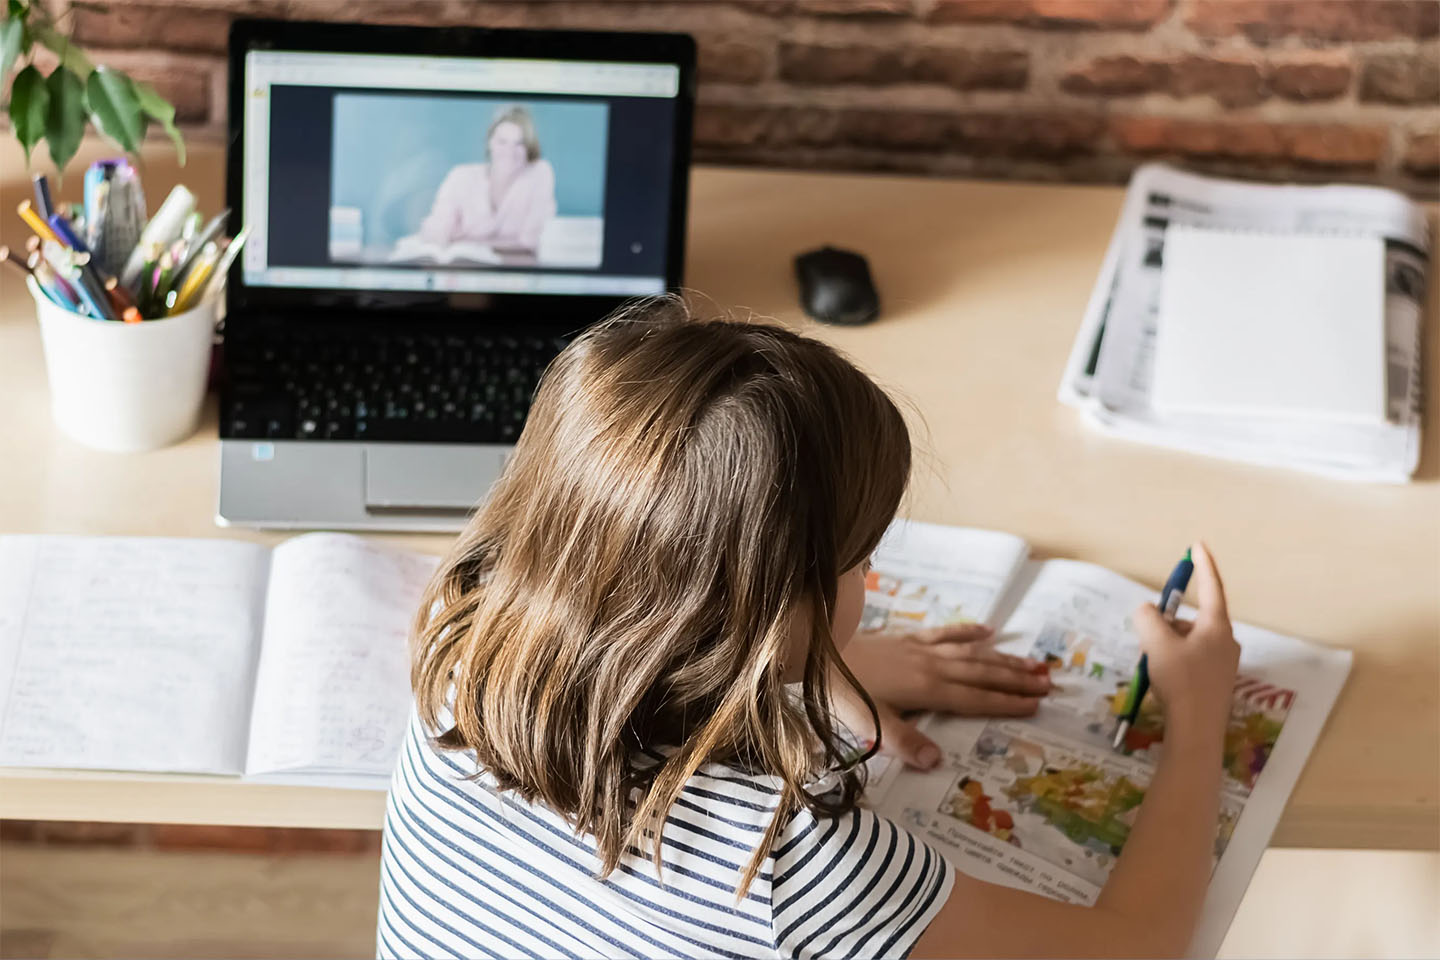 The concept of distance online learning self-isolation. Child sitting home desk doing lessons through a digital laptop.